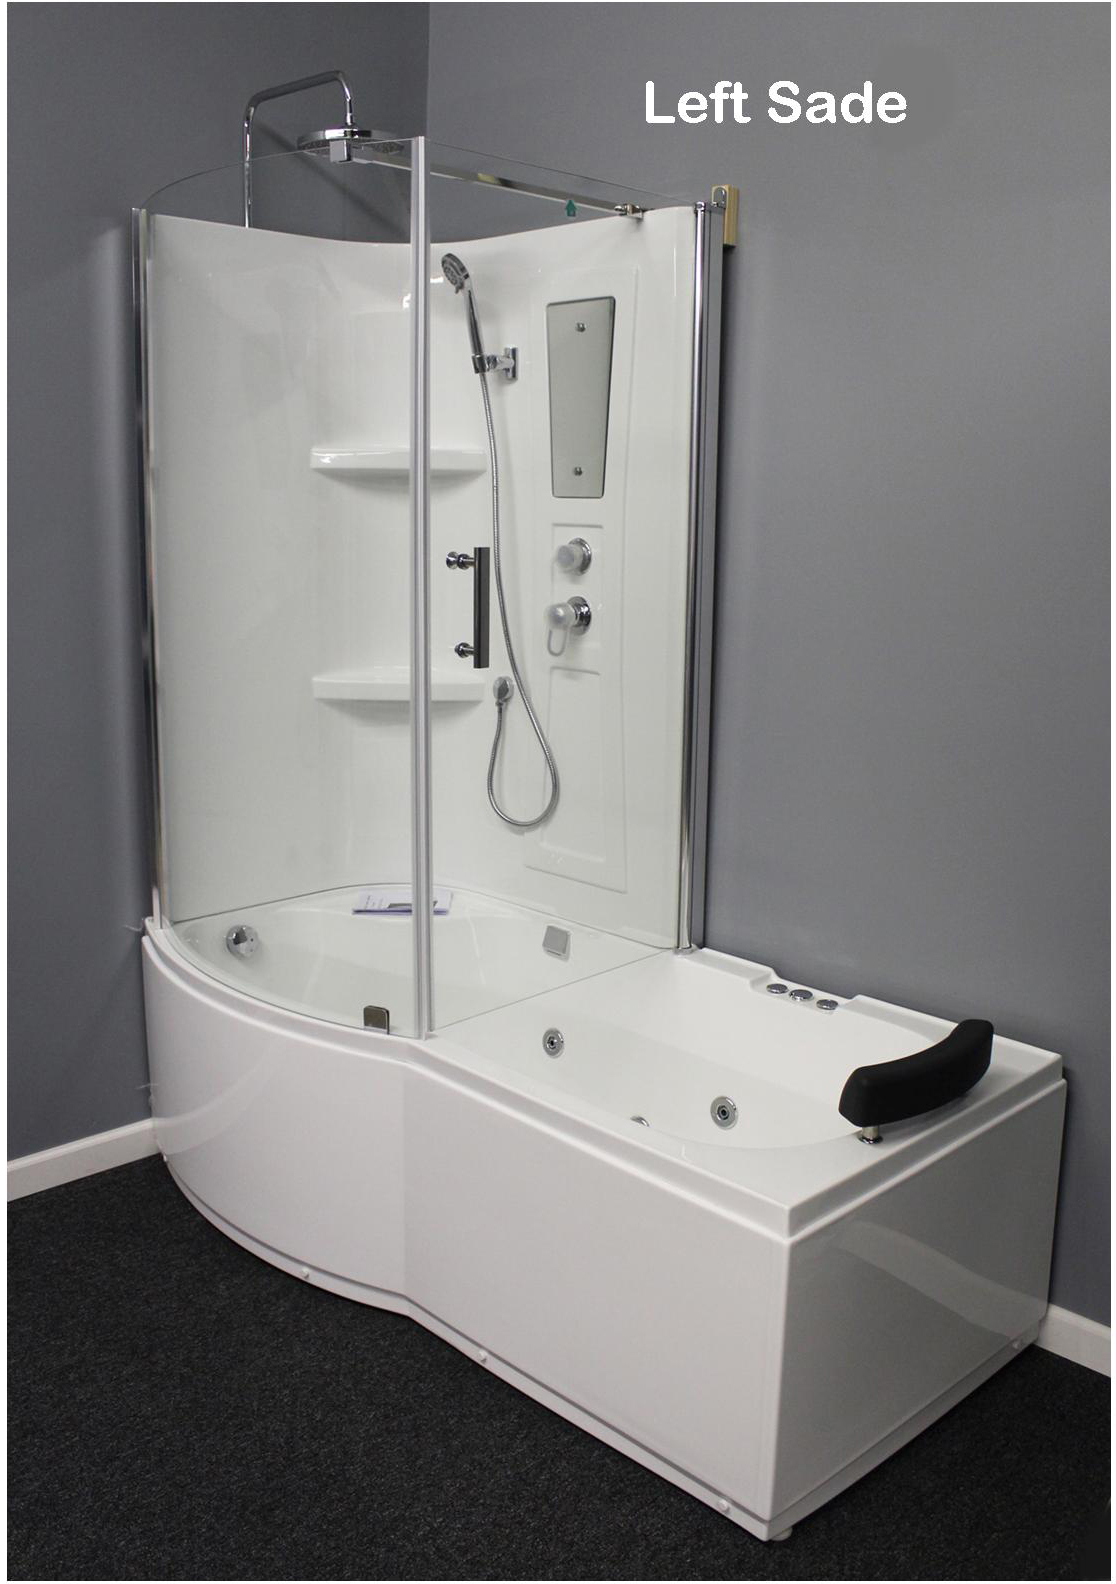 Shower Room with Deluxe Whirlpool Tub . 9045 Lux with air bubbles ...